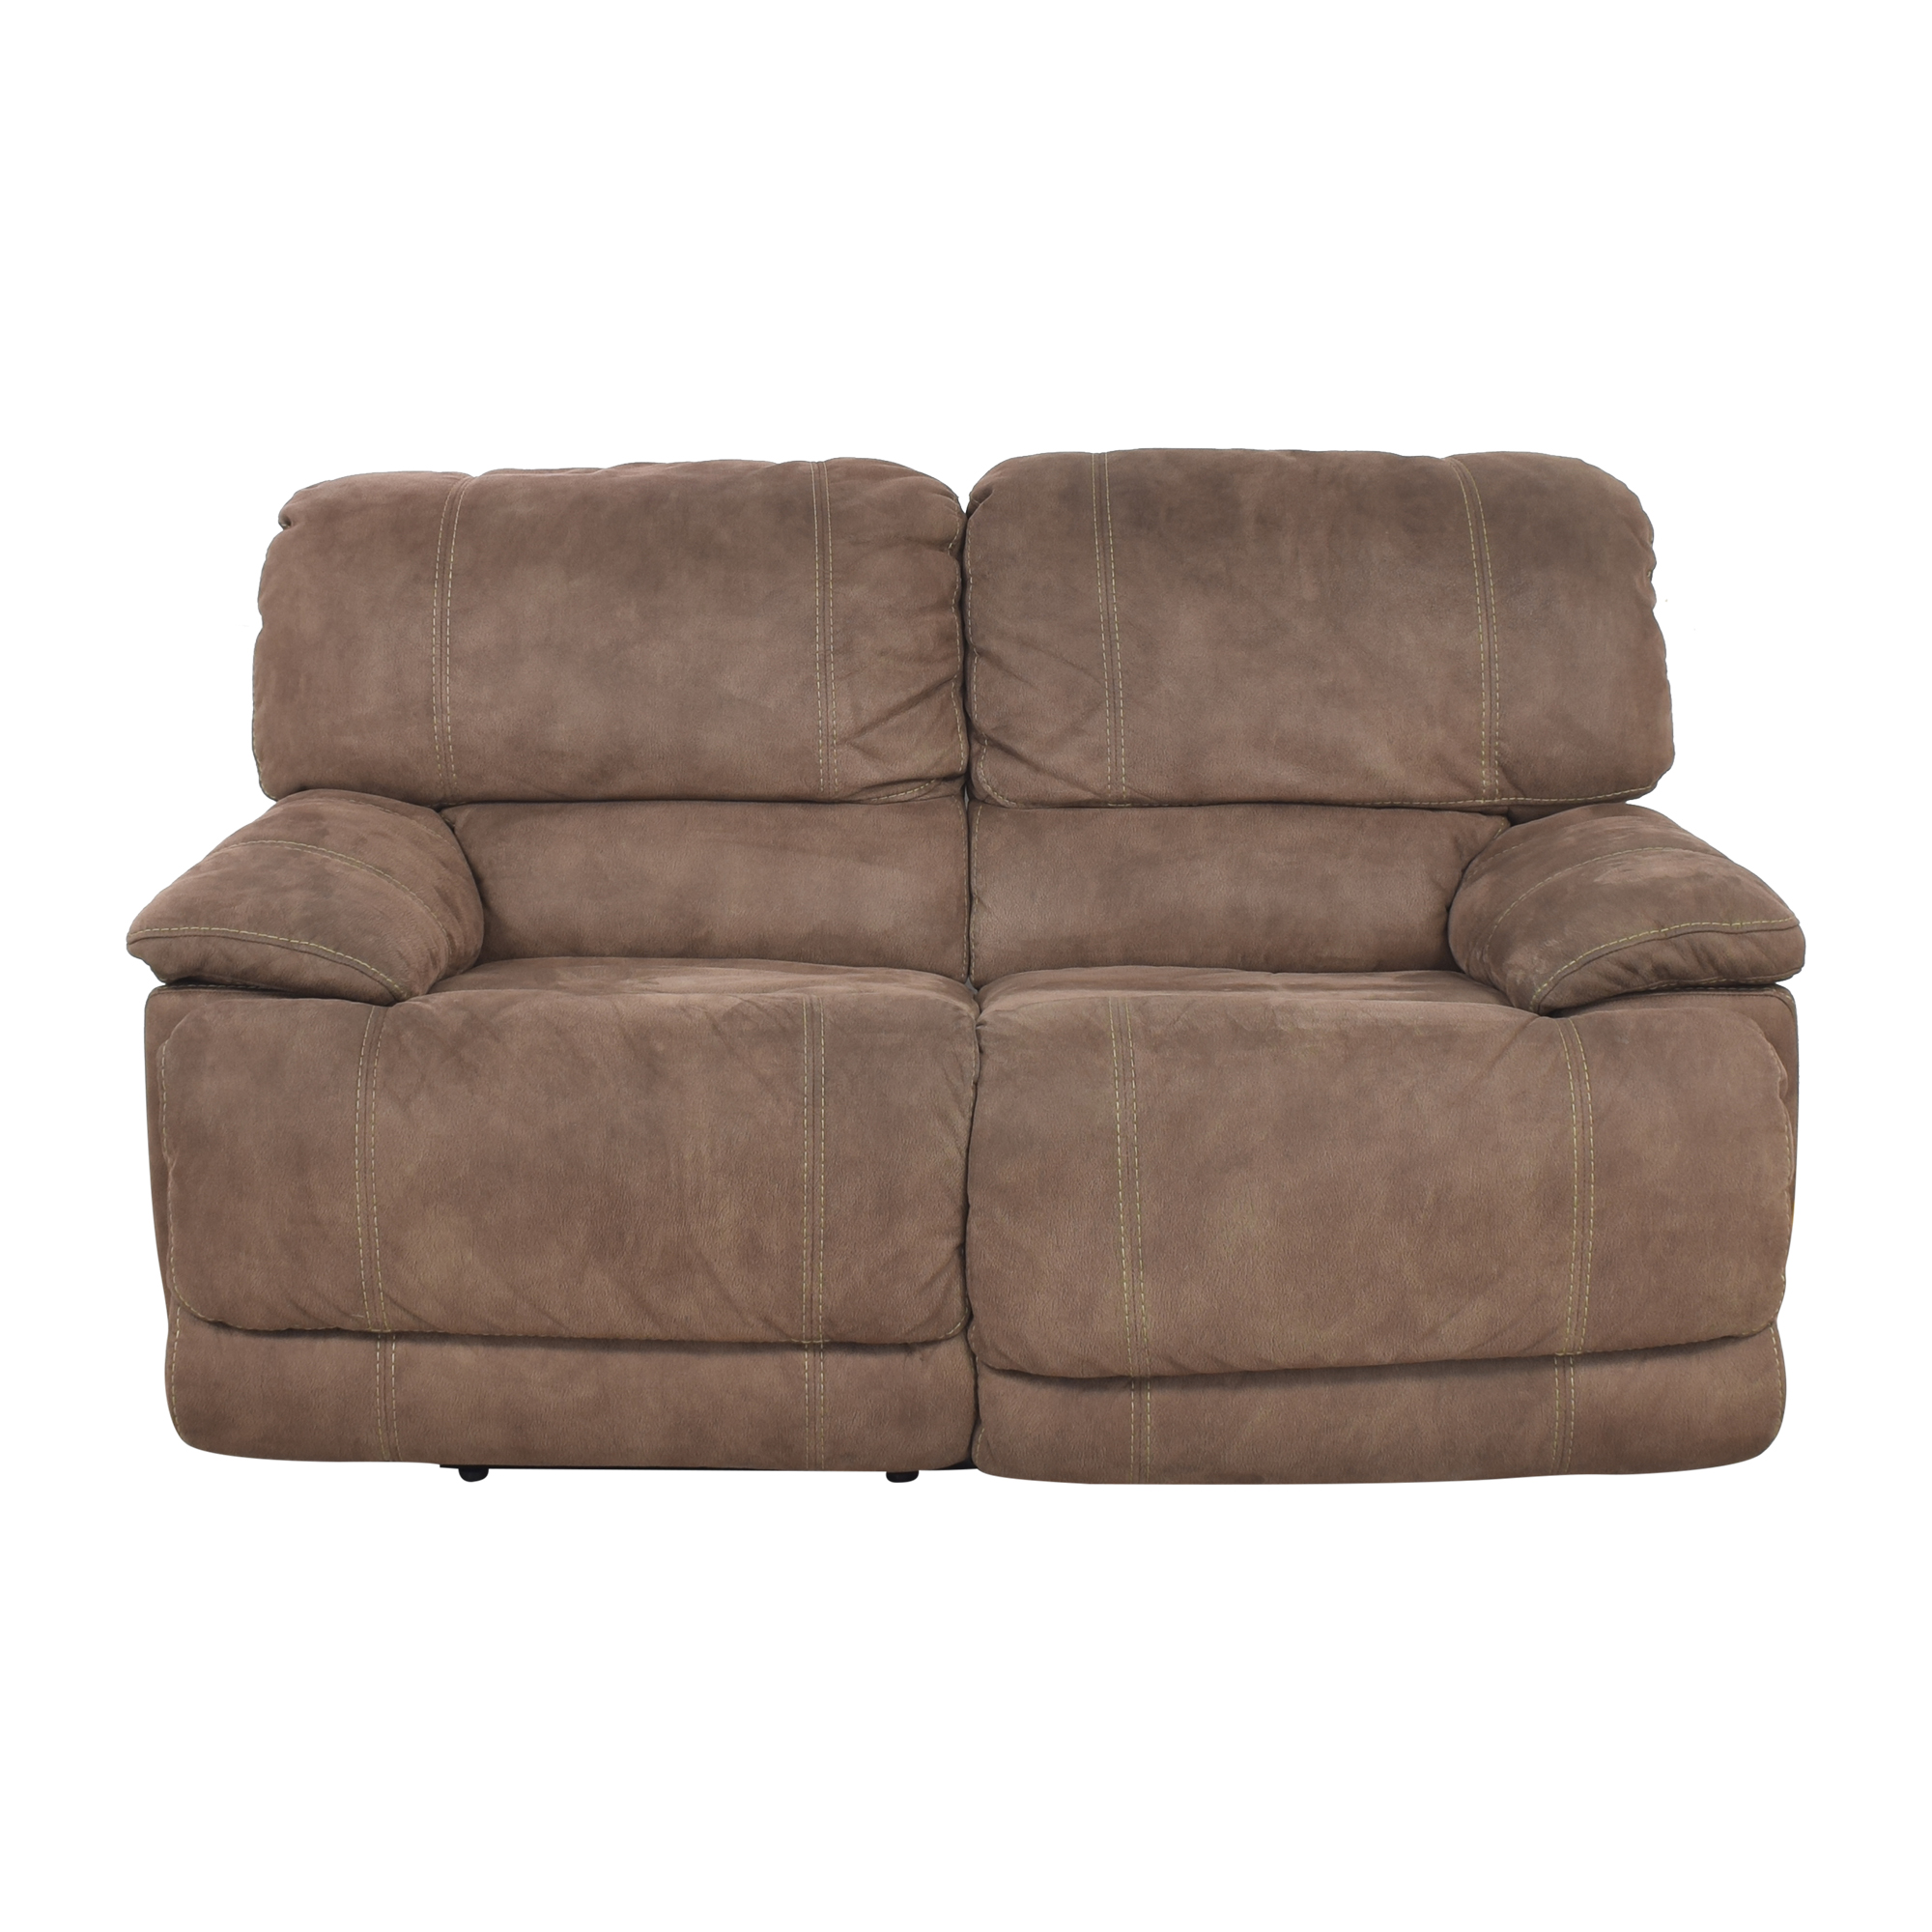 Macy's Macy's Power Reclining Felyx Sofa coupon